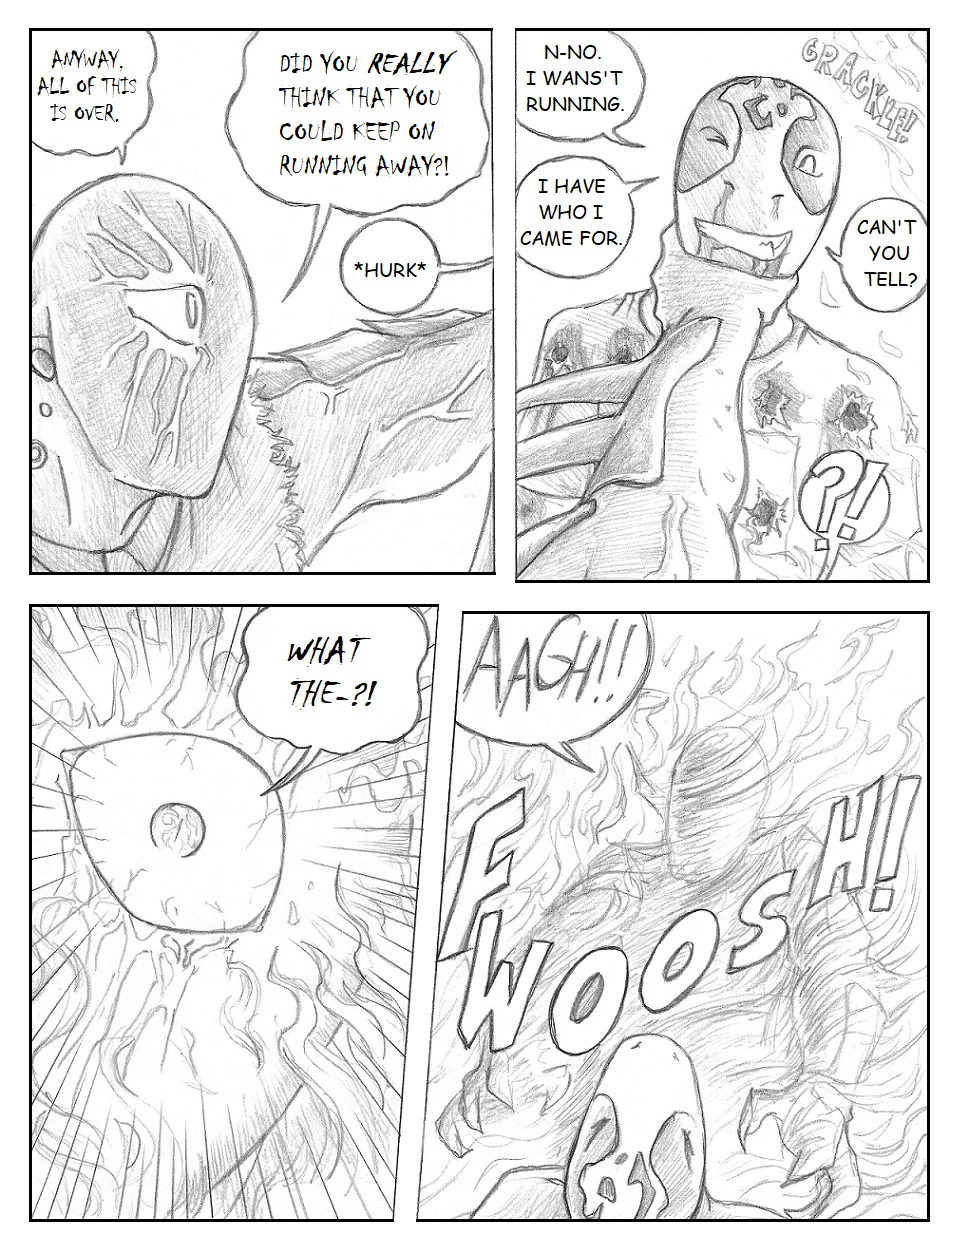 Section 11 page 129